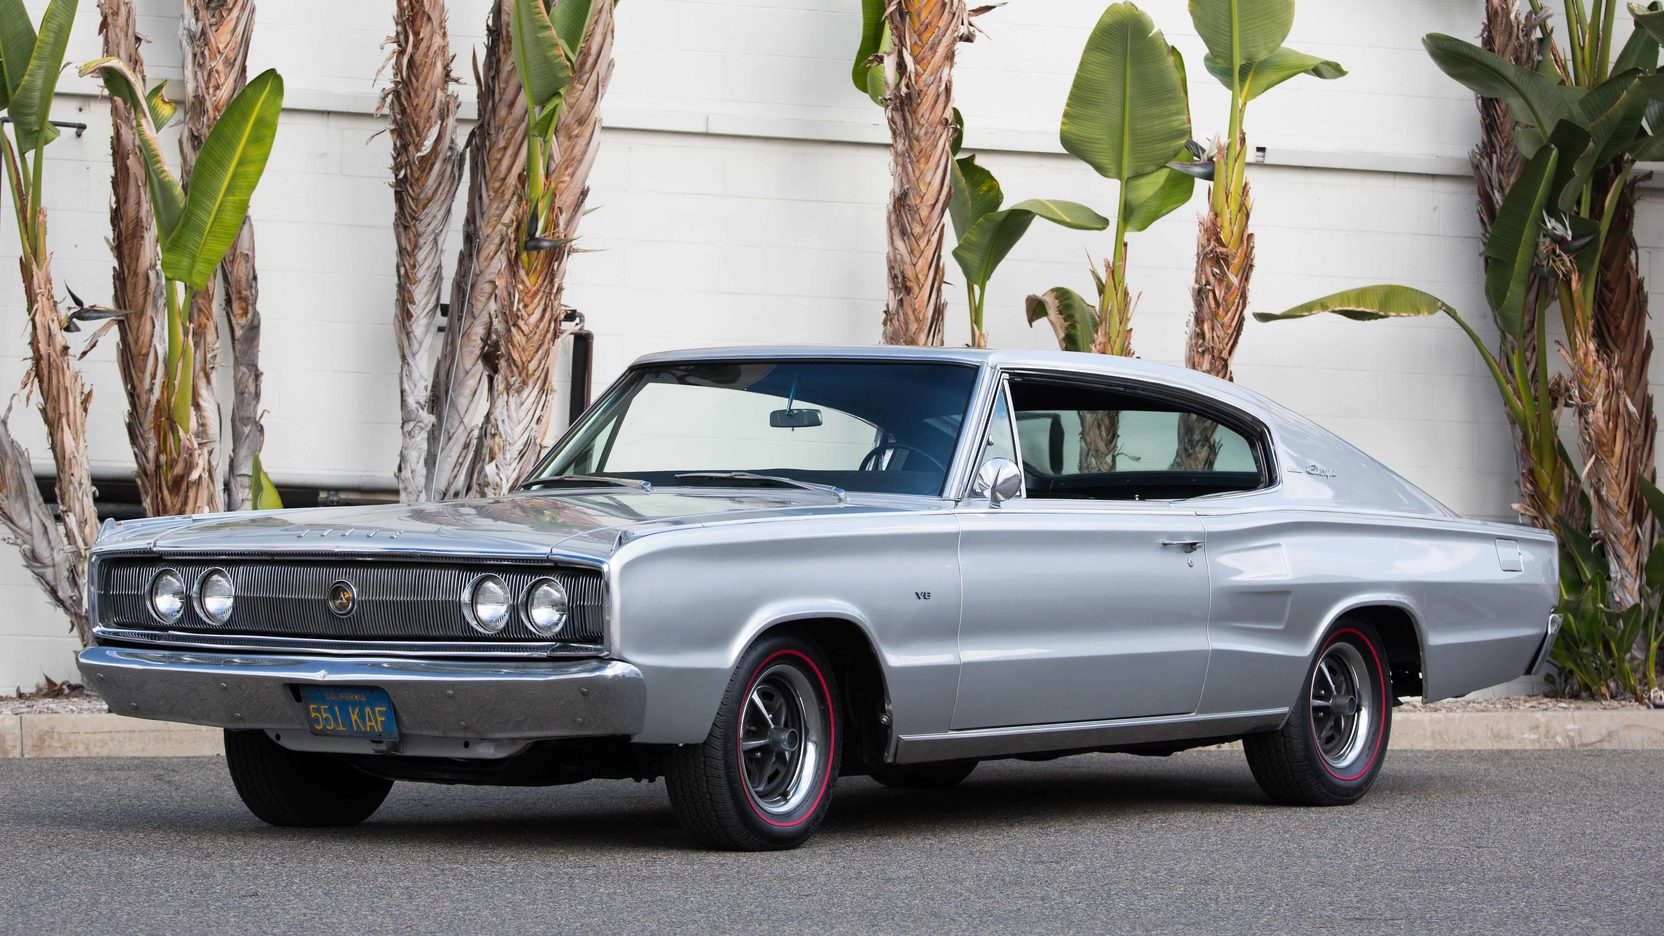 1967 Dodge Charger front 3/4